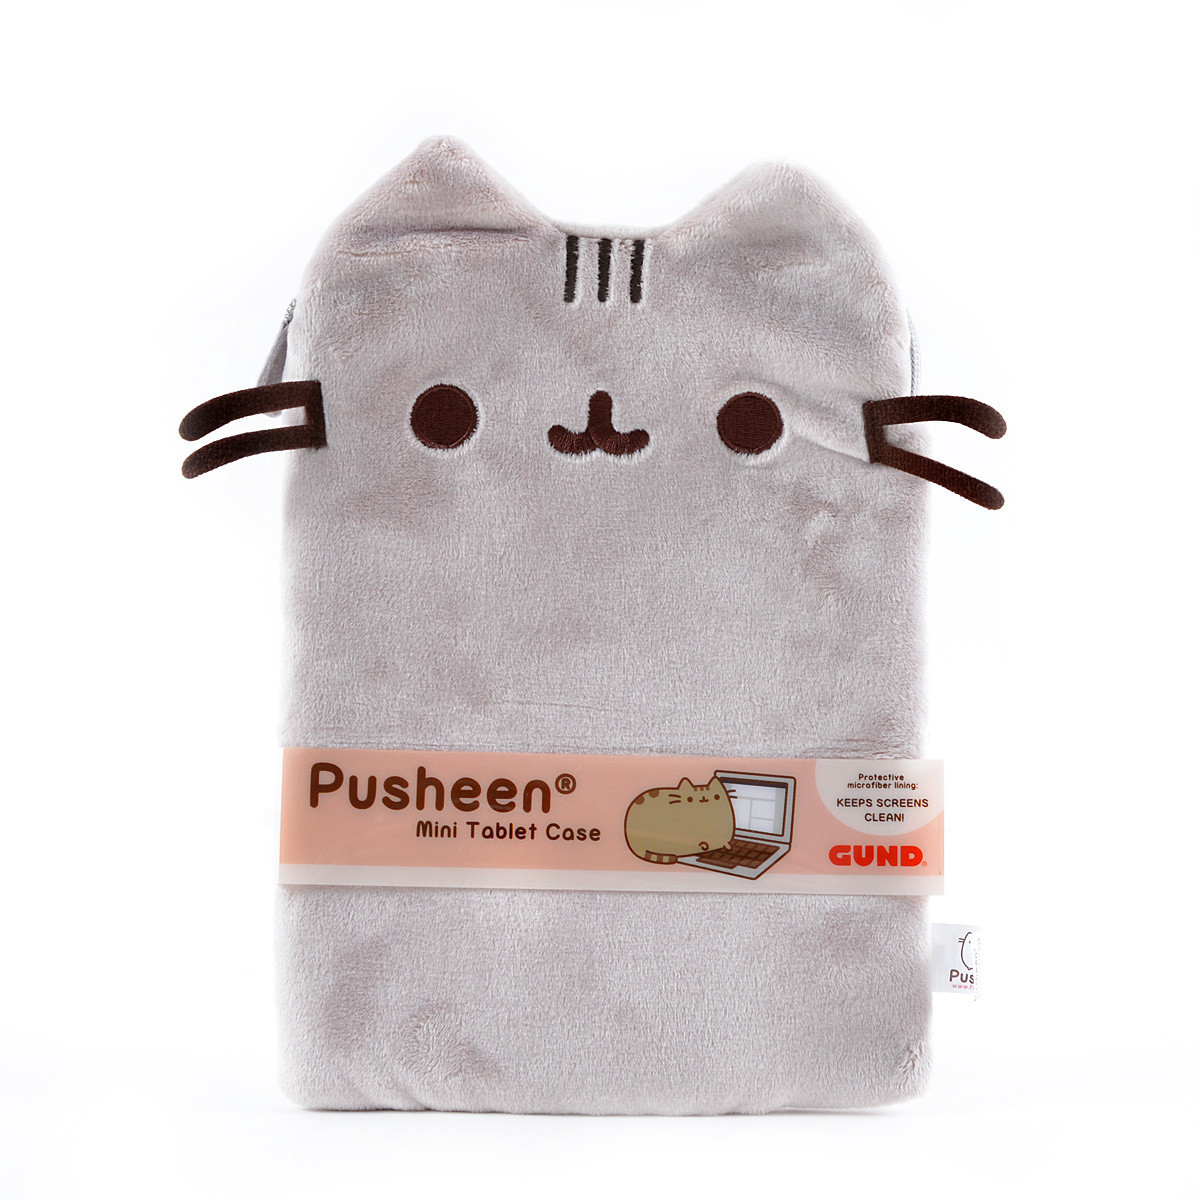 Pusheen Plush Mini Tablet Case Tokyo Otaku Mode Shop